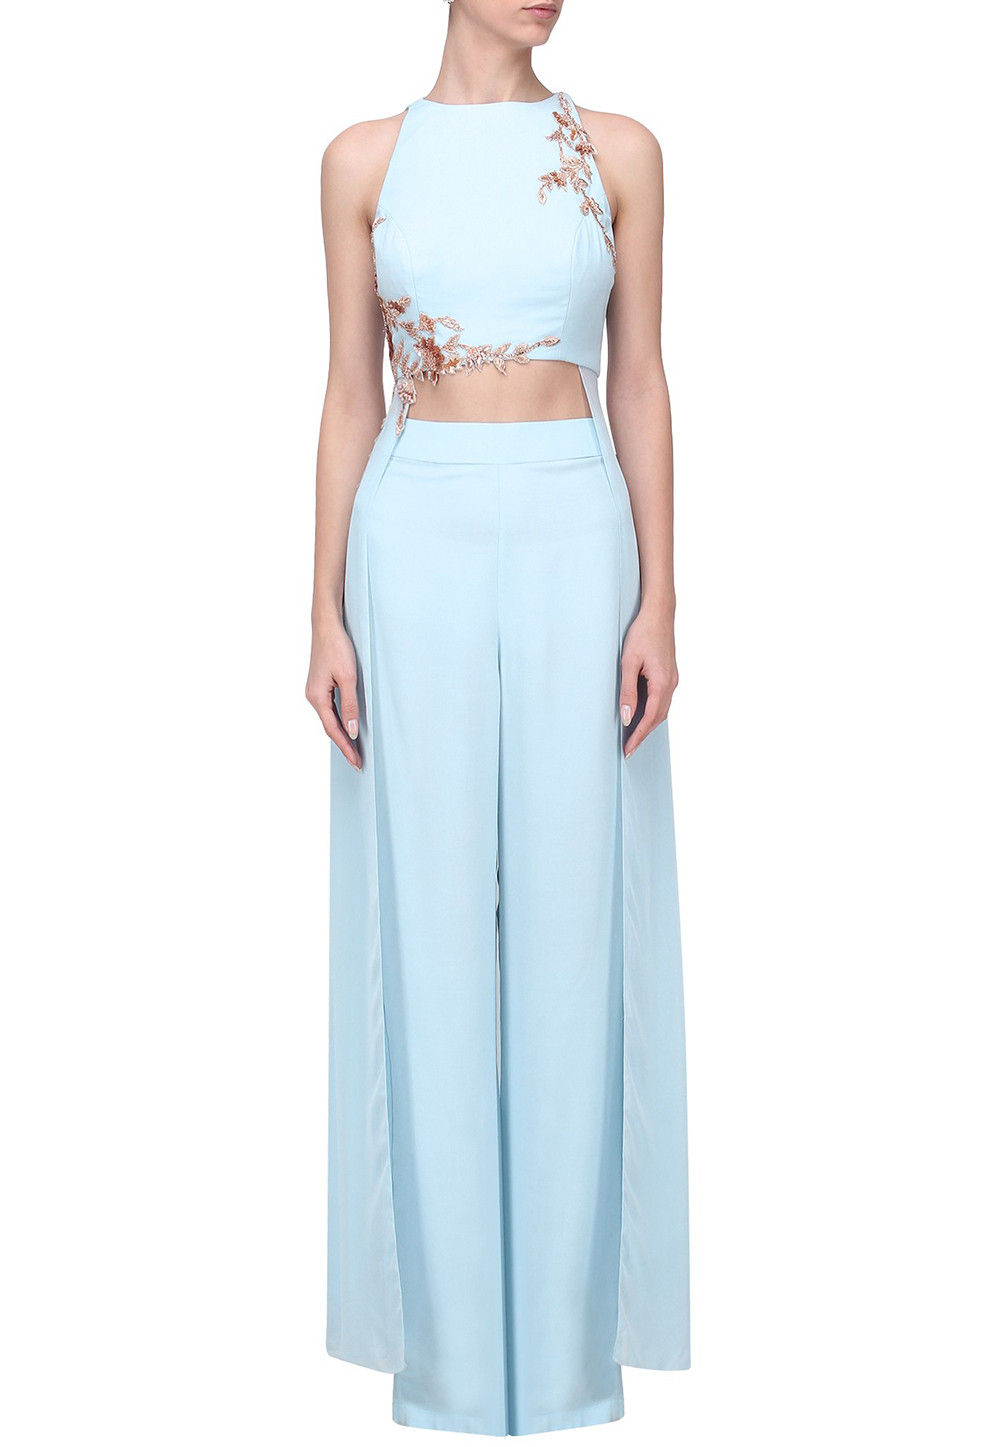 Embroidered Crepe Crop Top Set in Sky blue